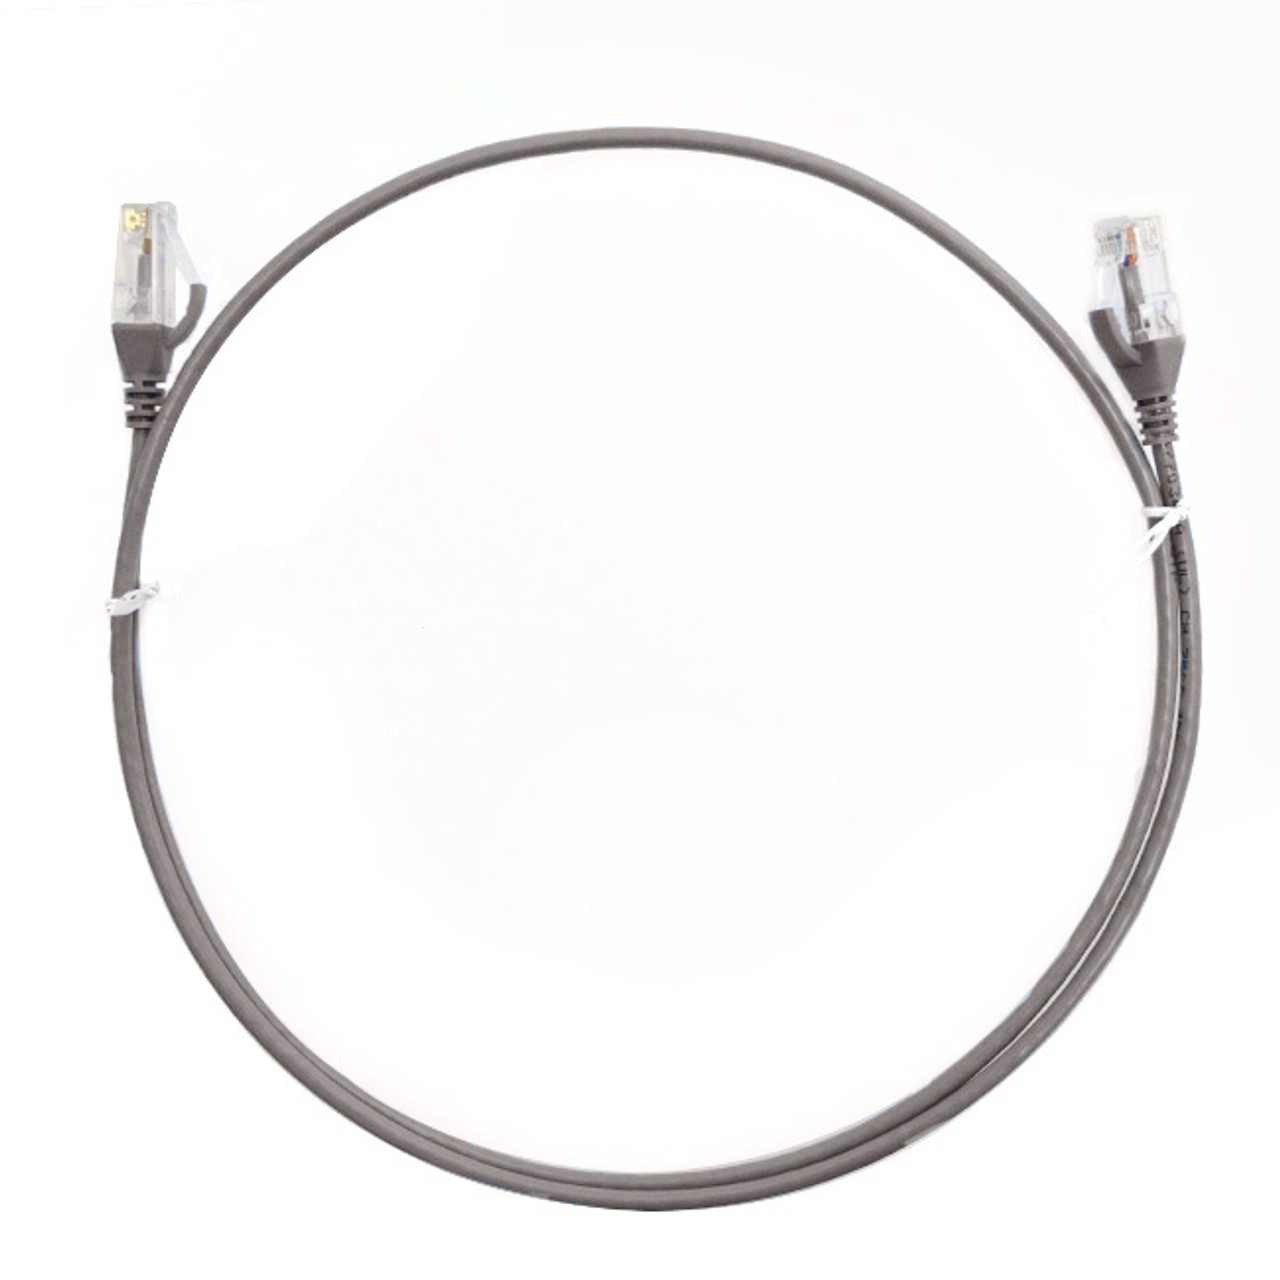 Image for 1.5m Cat 6 Ultra Thin LSZH Ethernet Network Cables: Grey CX Computer Superstore